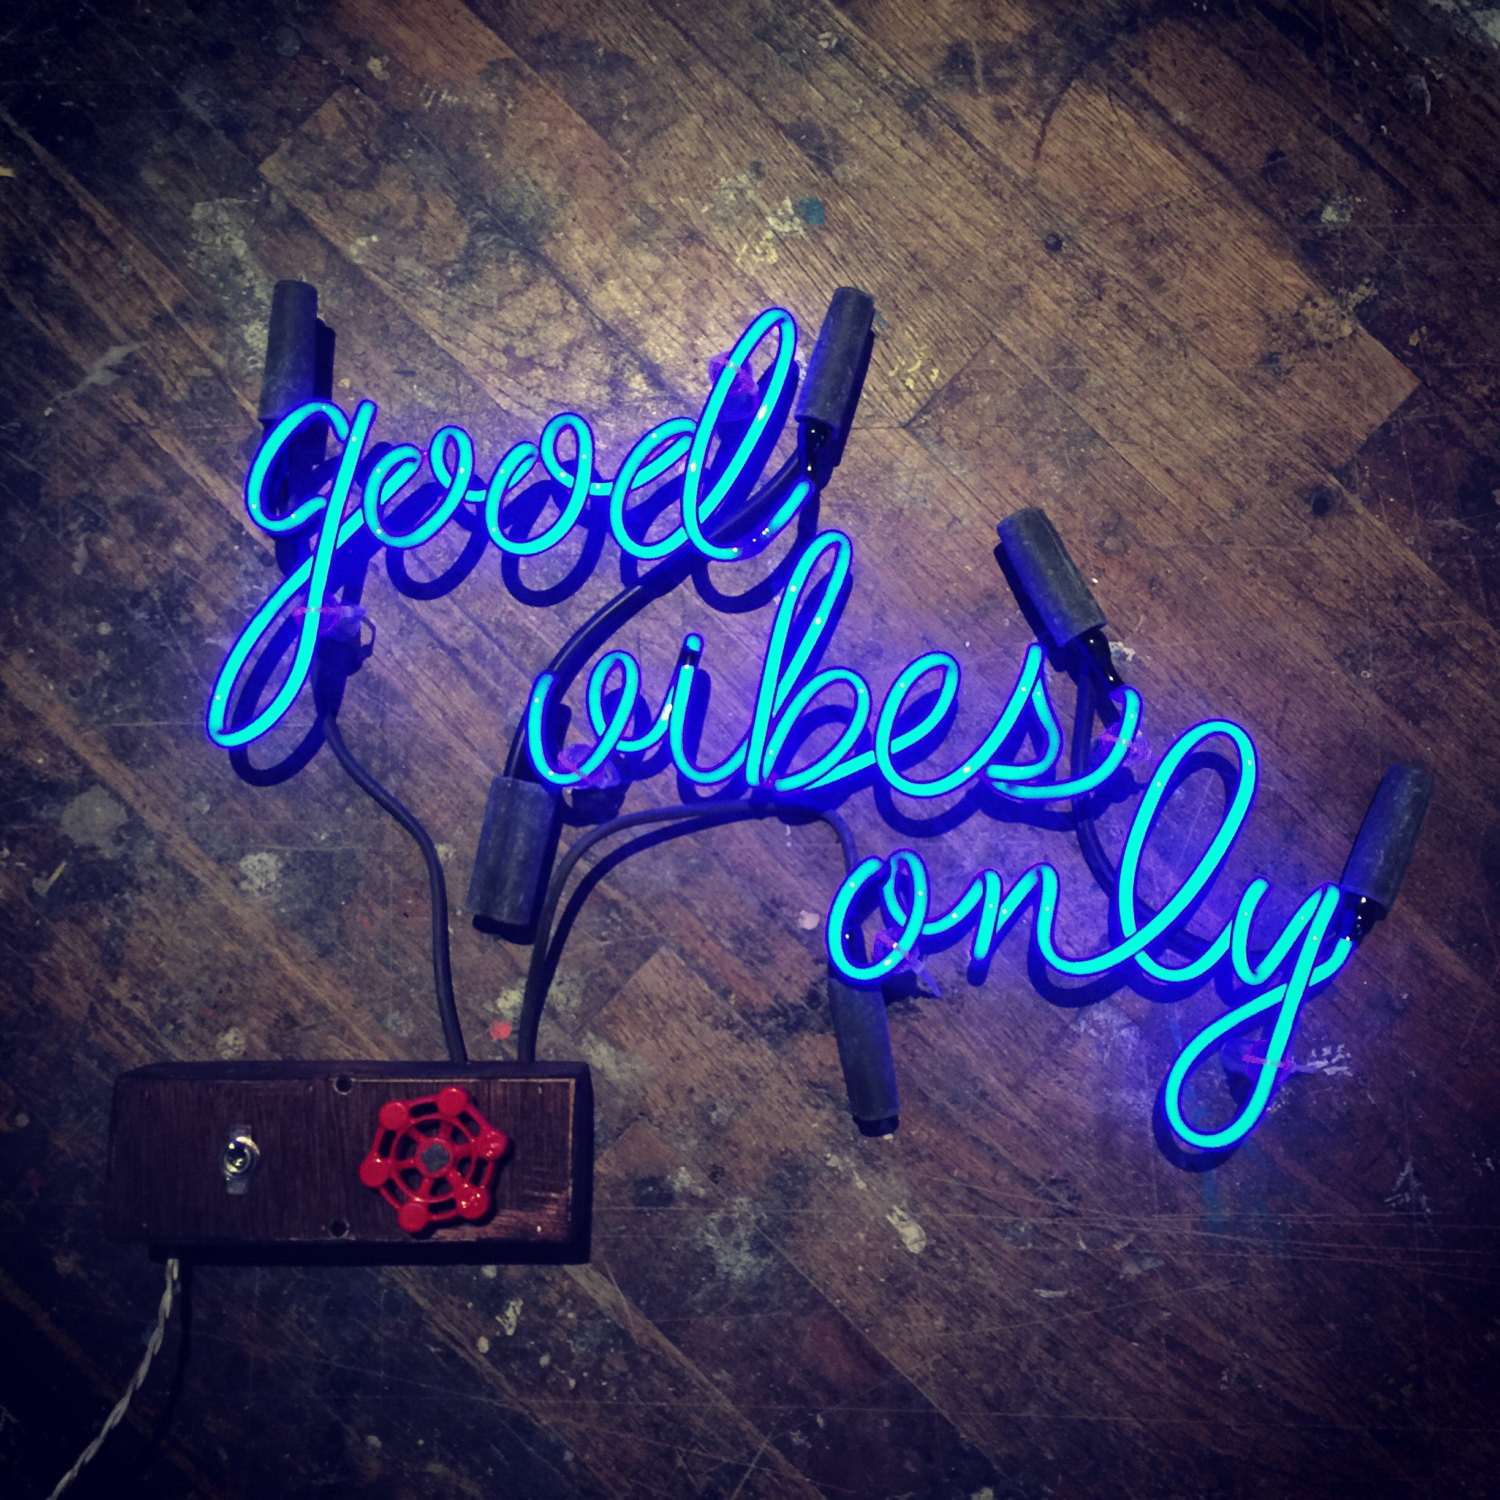 Positive Vibes Quotes Wallpaper Good Vibes Only Neon Sign Ready Made Shopblast Best